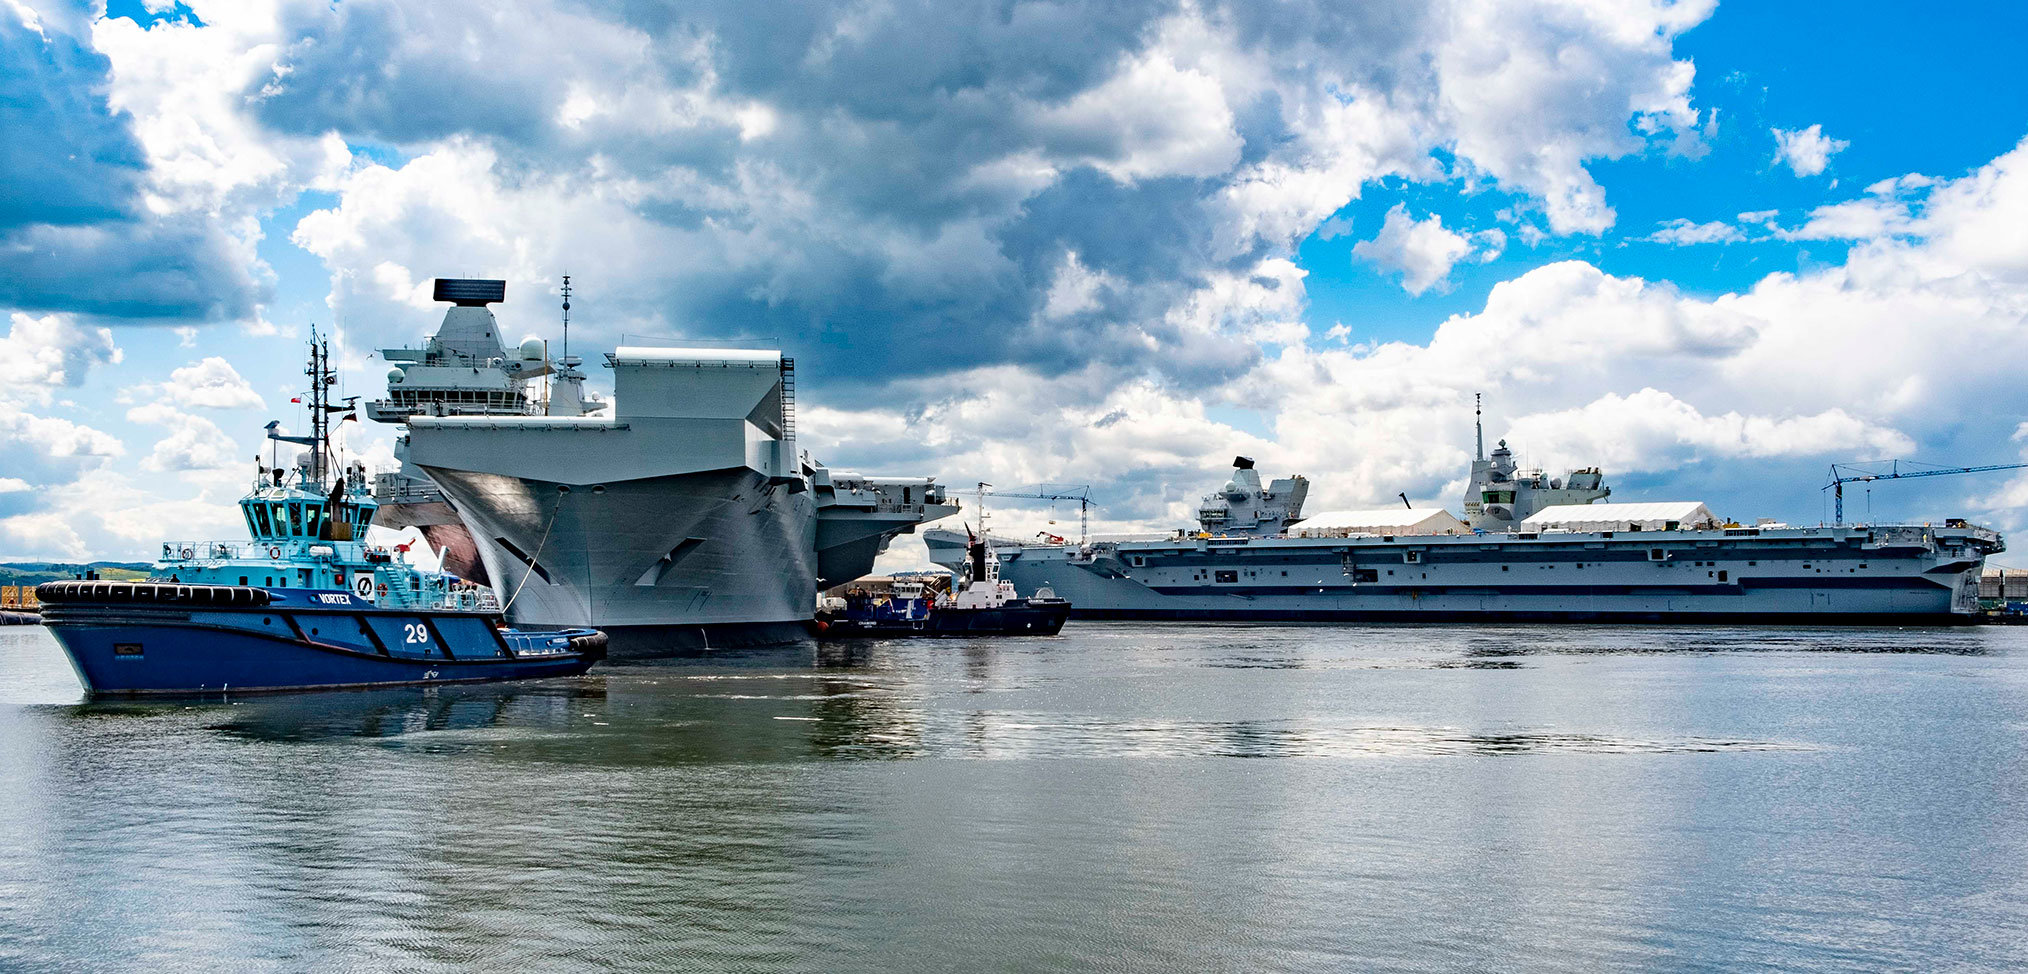 HMS Queen Elizabeth completes dry docking period and leaves Rosyth